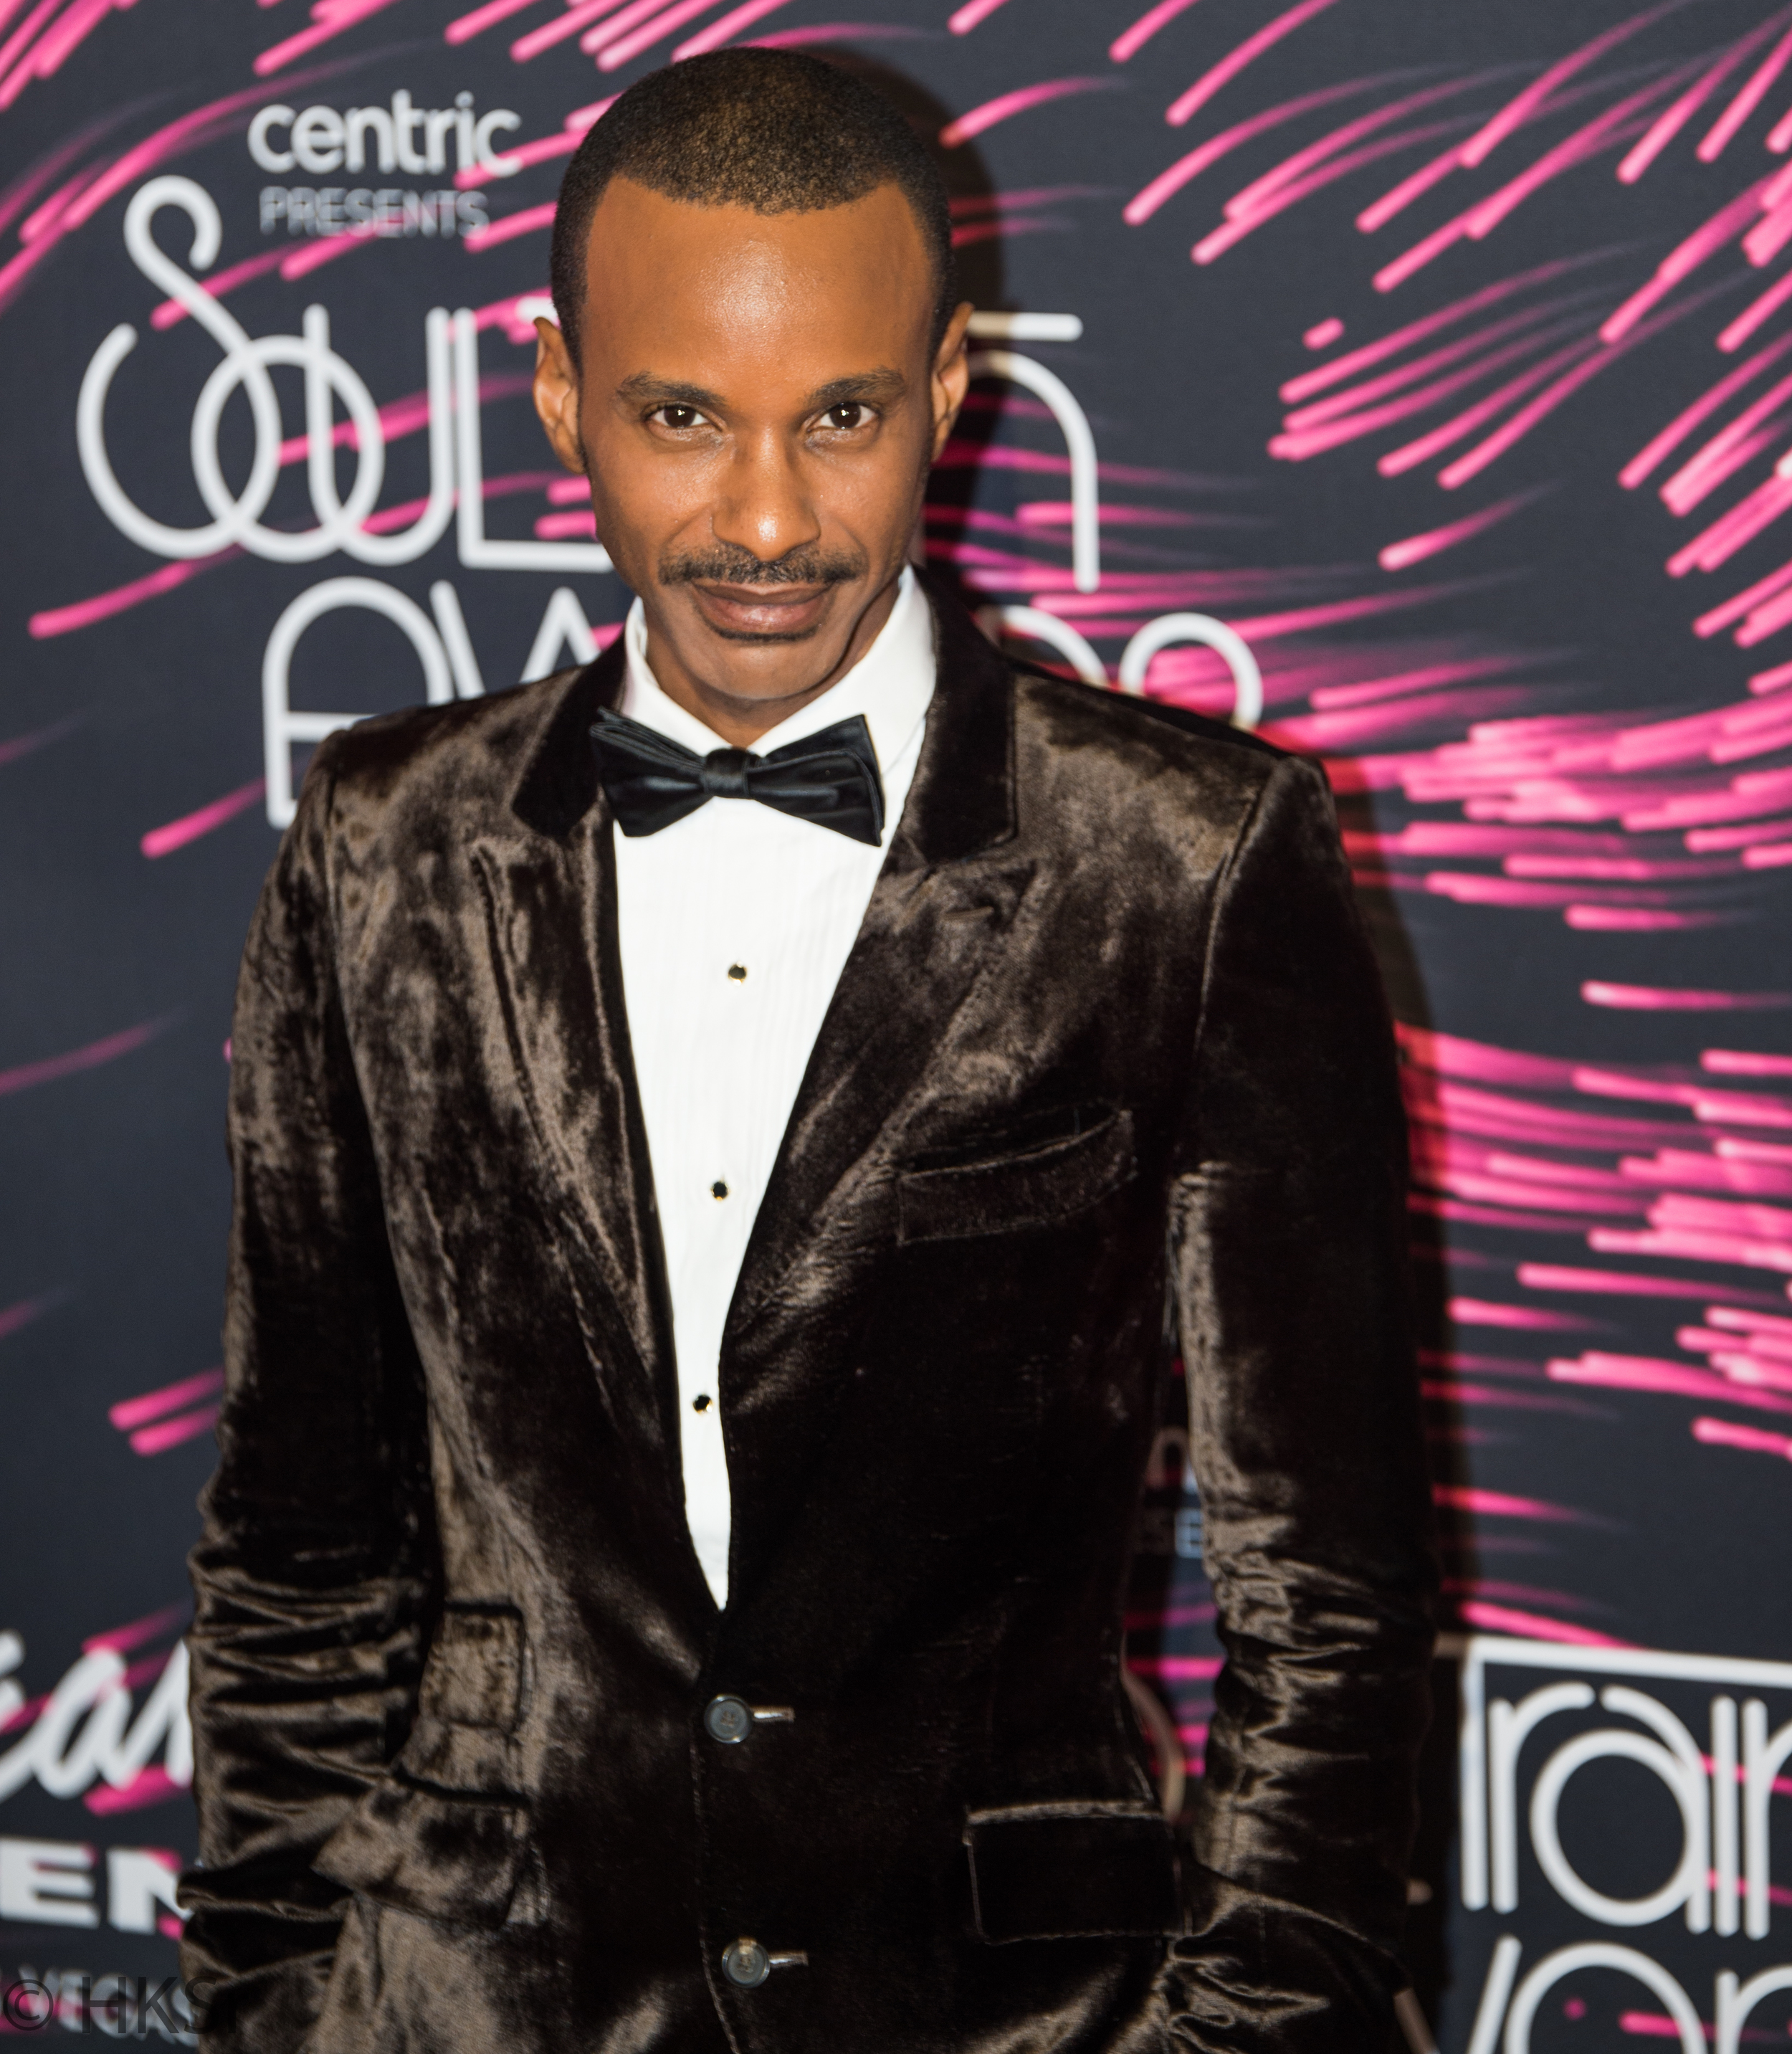 Another performer on the red carpet Tevin Campbell at the Soul Train Awards